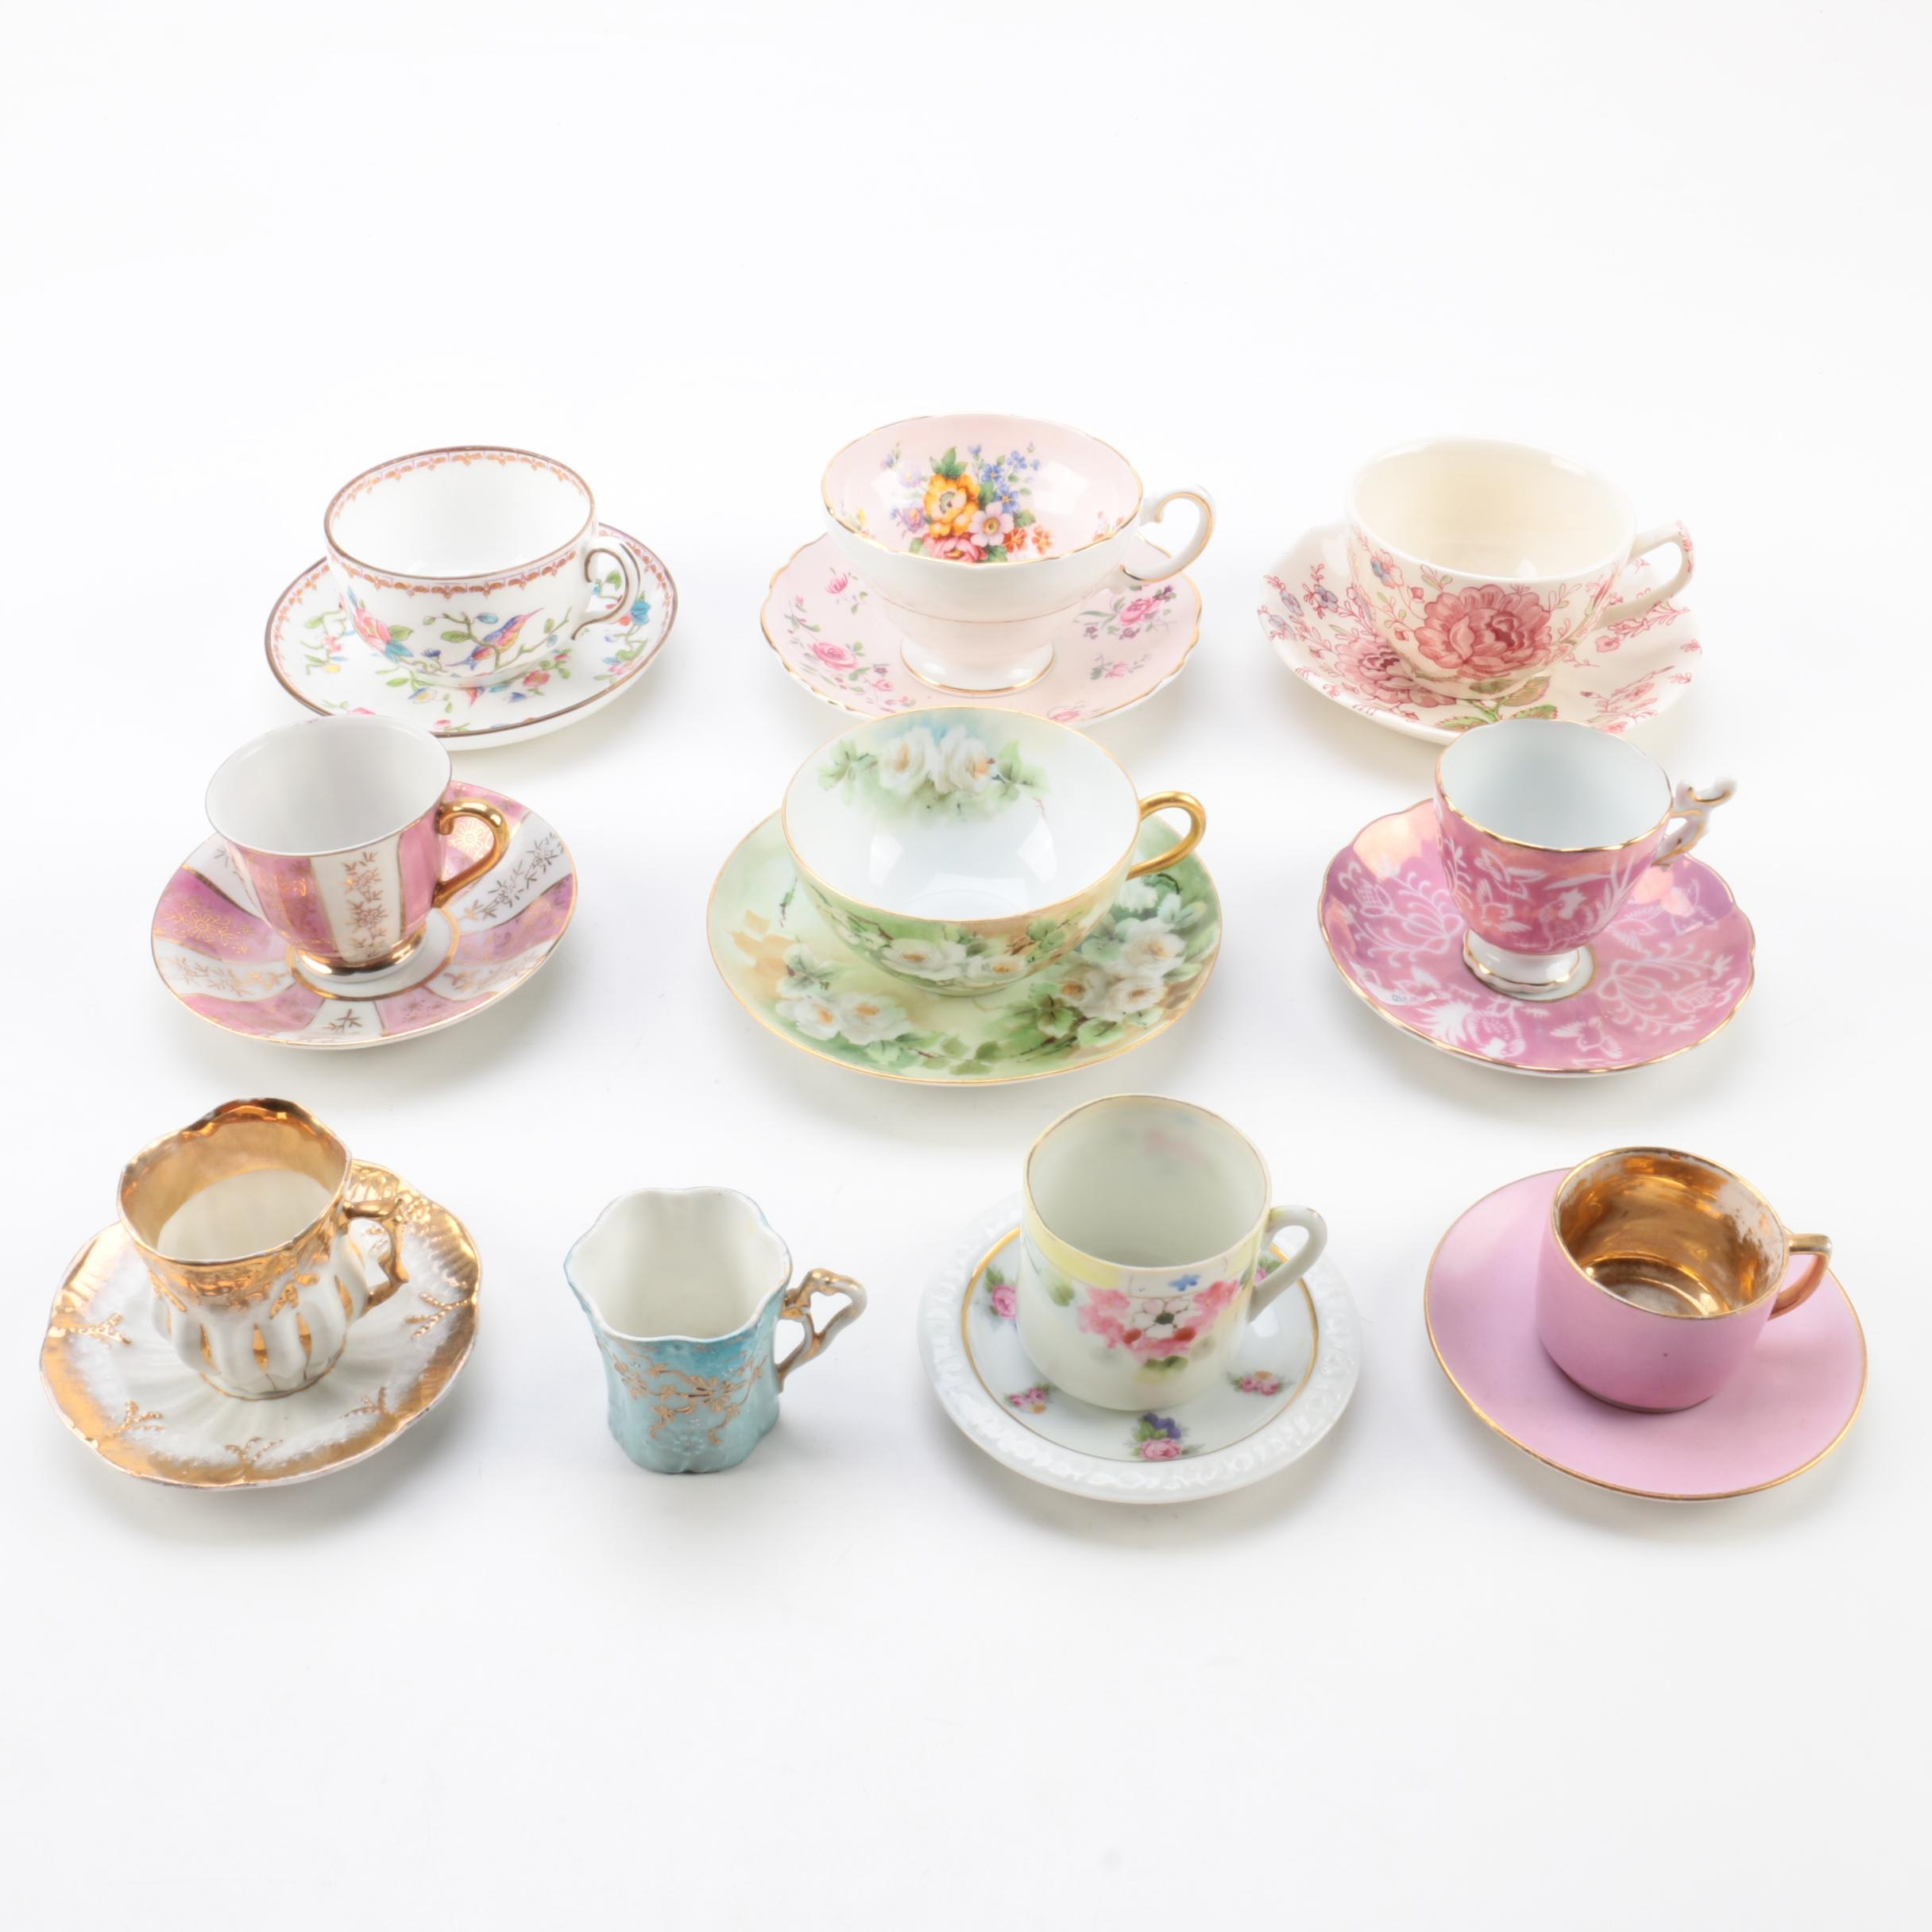 Antique and Vintage Teacups Including Coalport and Rosenthal